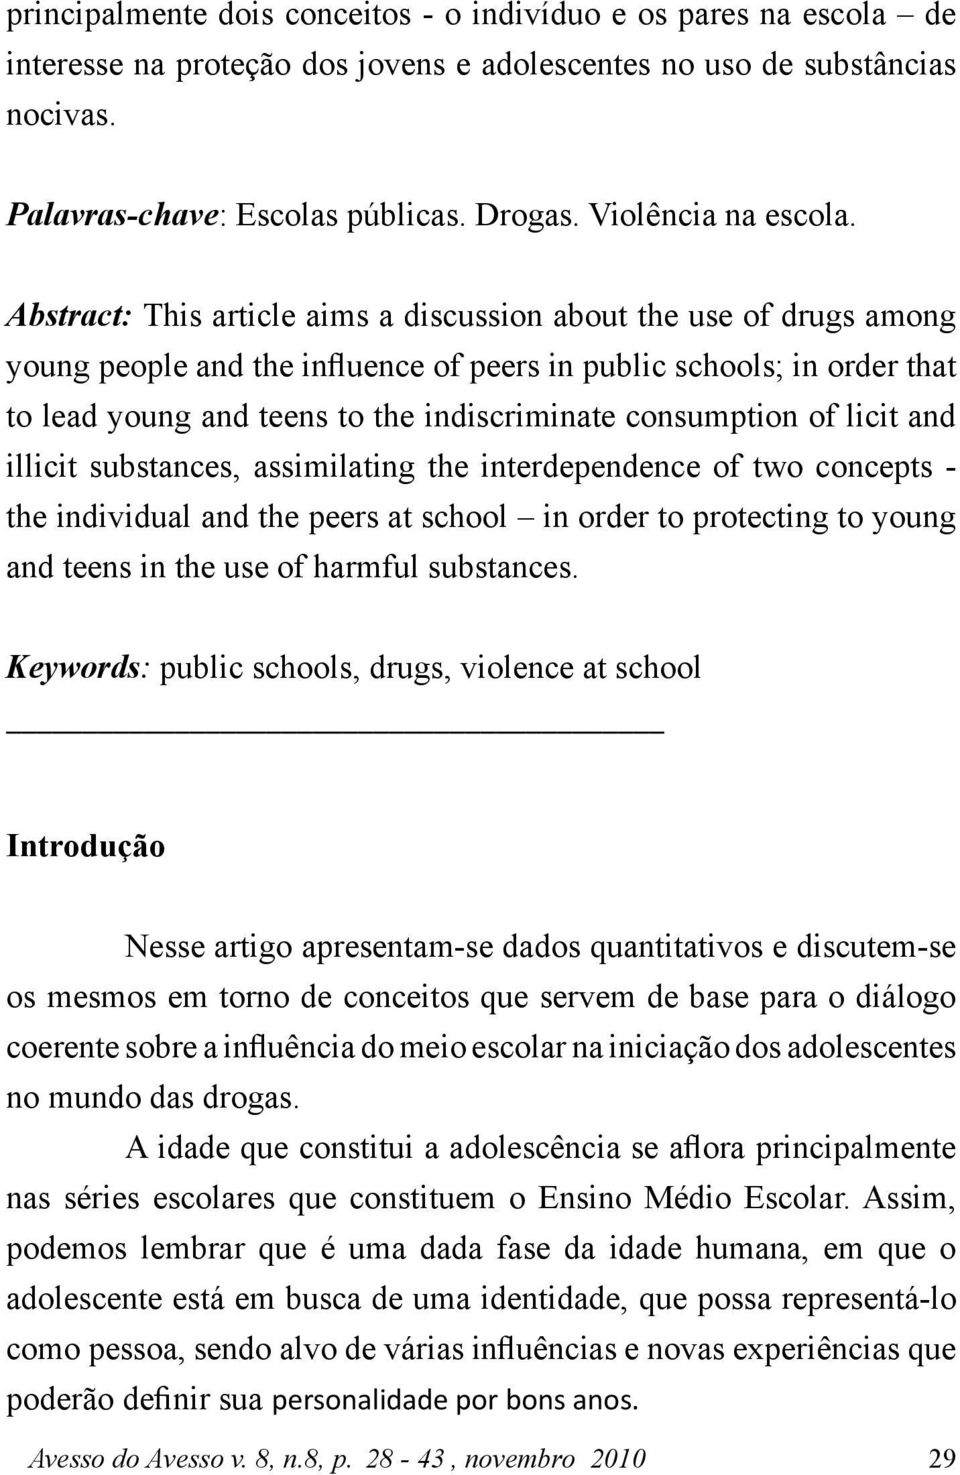 Abstract: This article aims a discussion about the use of drugs among young people and the influence of peers in public schools; in order that to lead young and teens to the indiscriminate